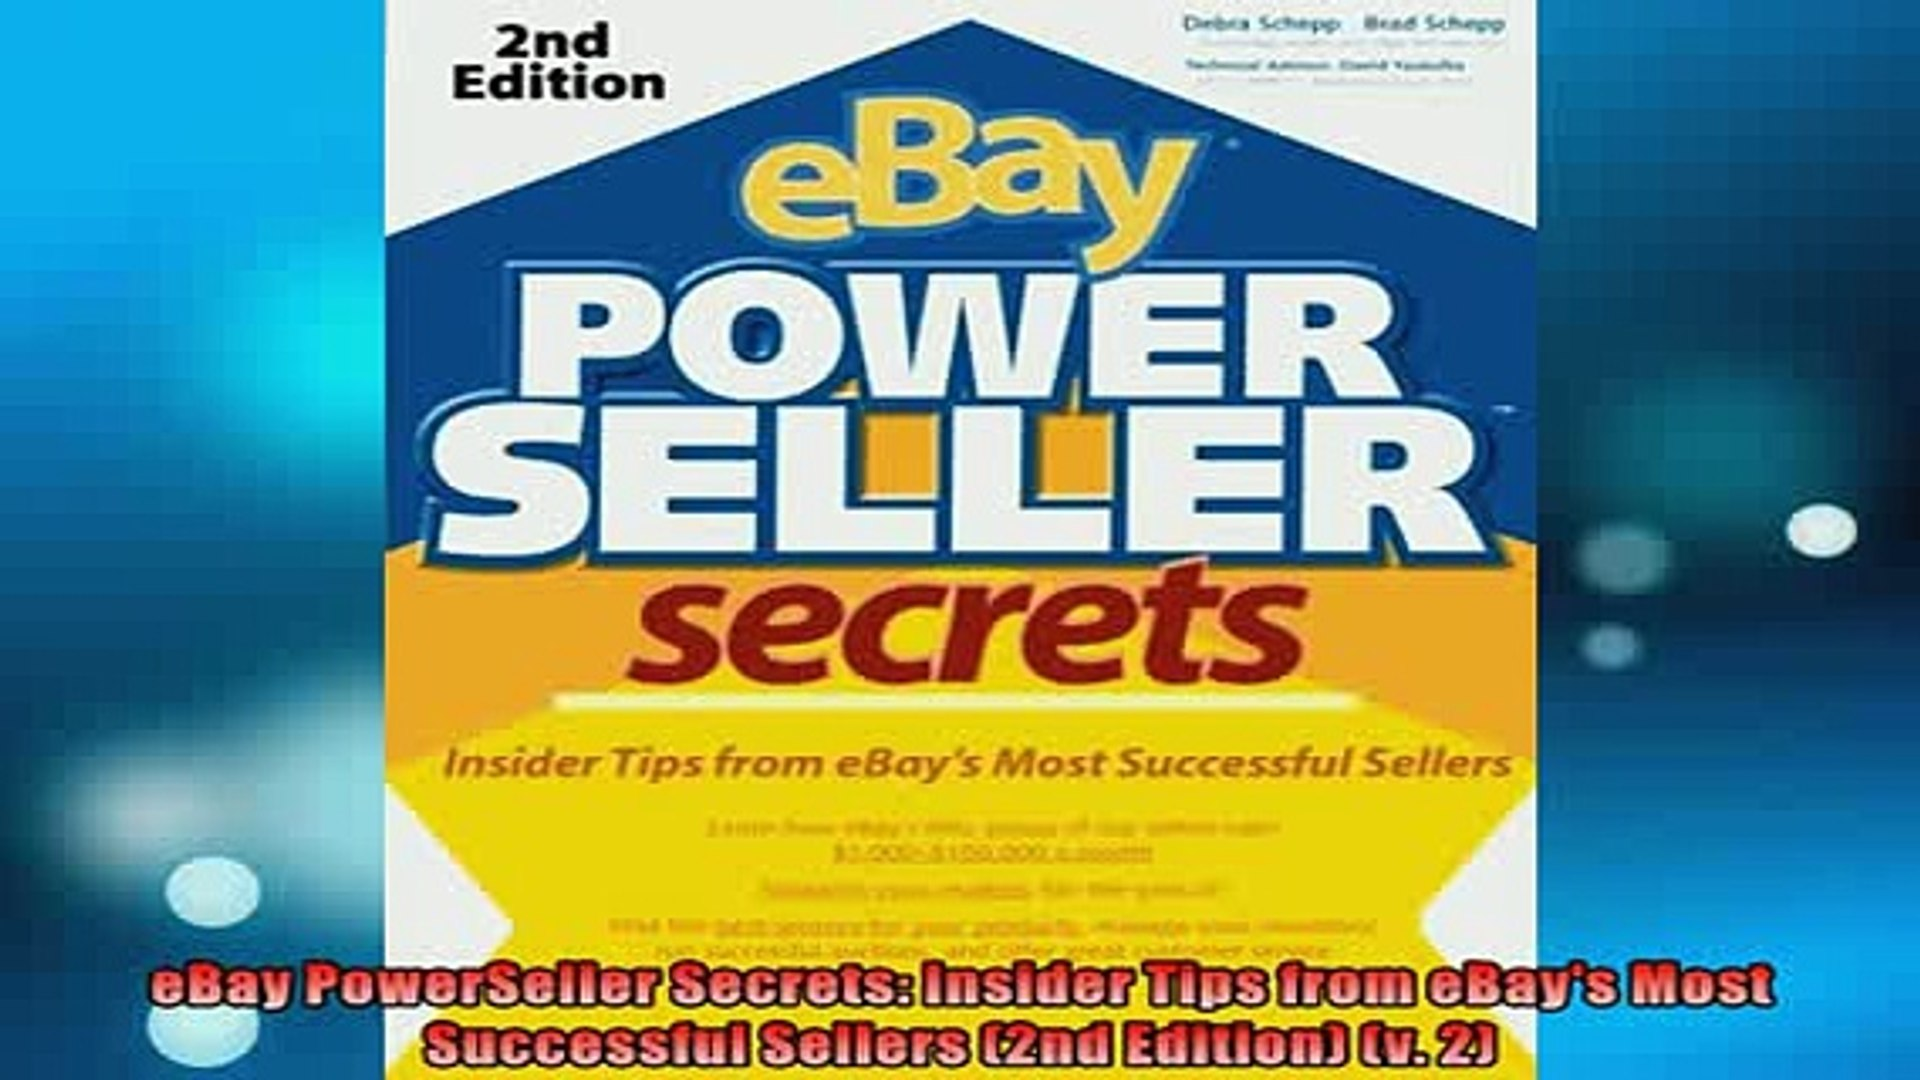 Free Download Ebay Powerseller Secrets Insider Tips From Ebays Most Successful Sellers 2nd Edition Read Online Video Dailymotion